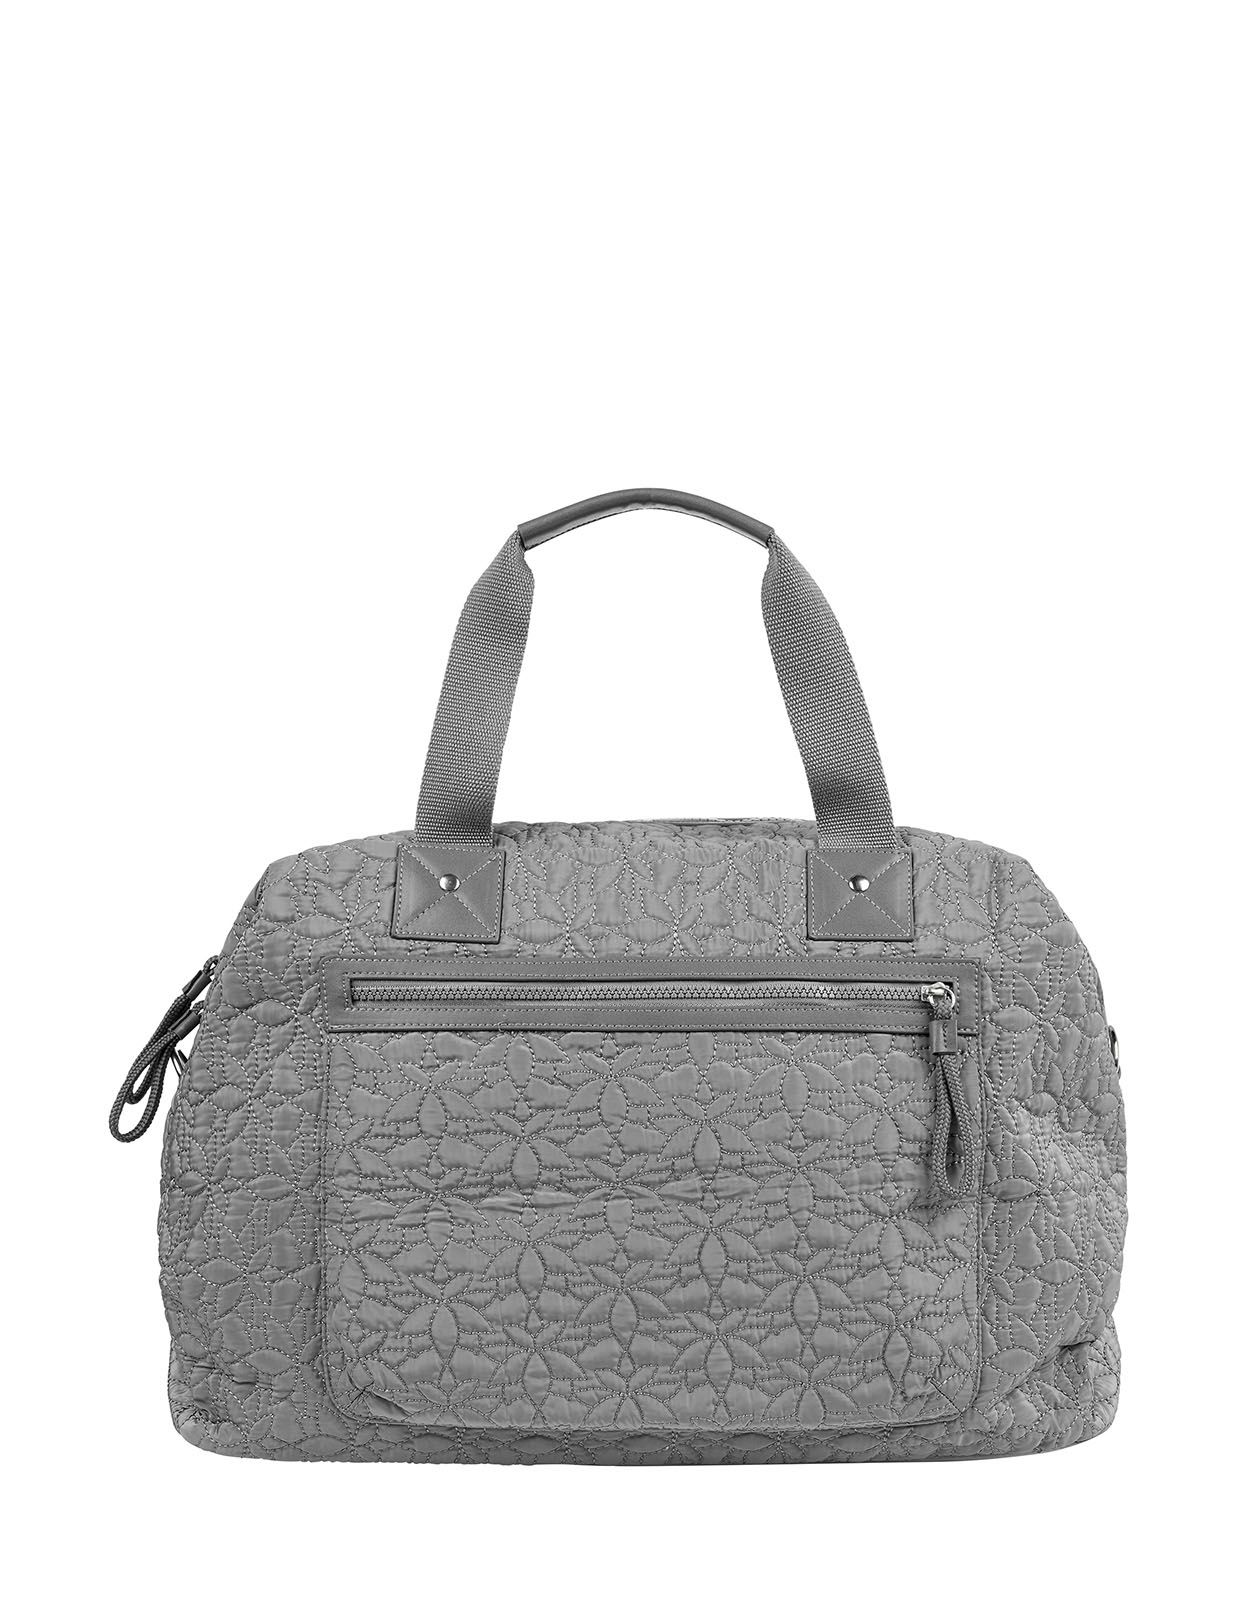 Accessorize Spirit Quilted Sports Tote Bag Grey One Size